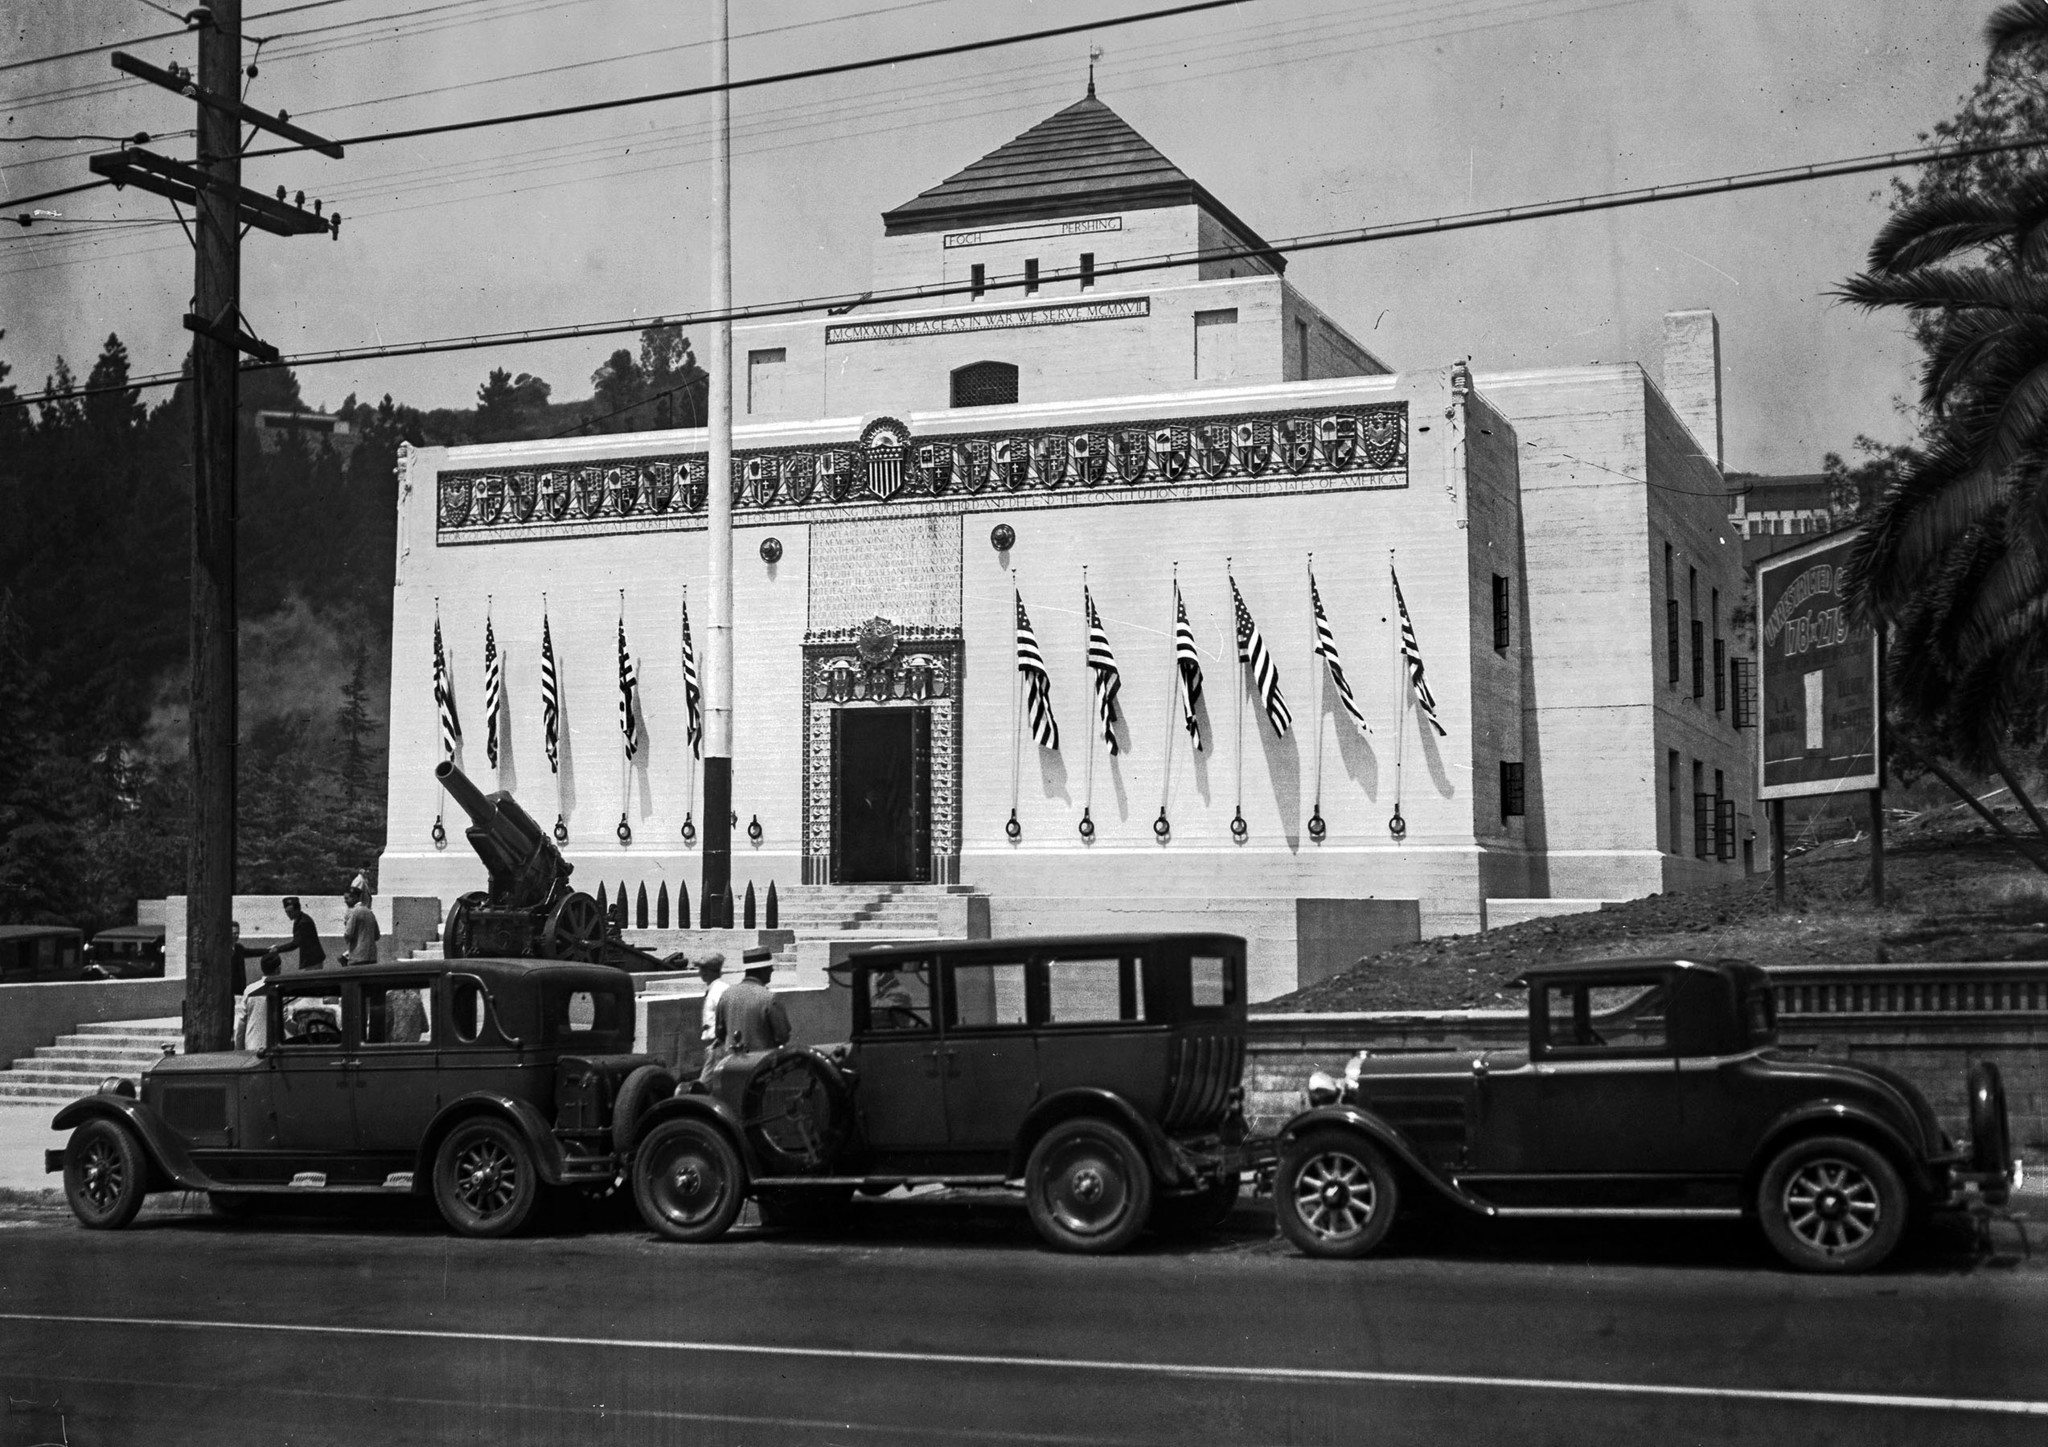 July 4, 1929: New American Legion Post dedication in Hollywood. This photo was published in the July